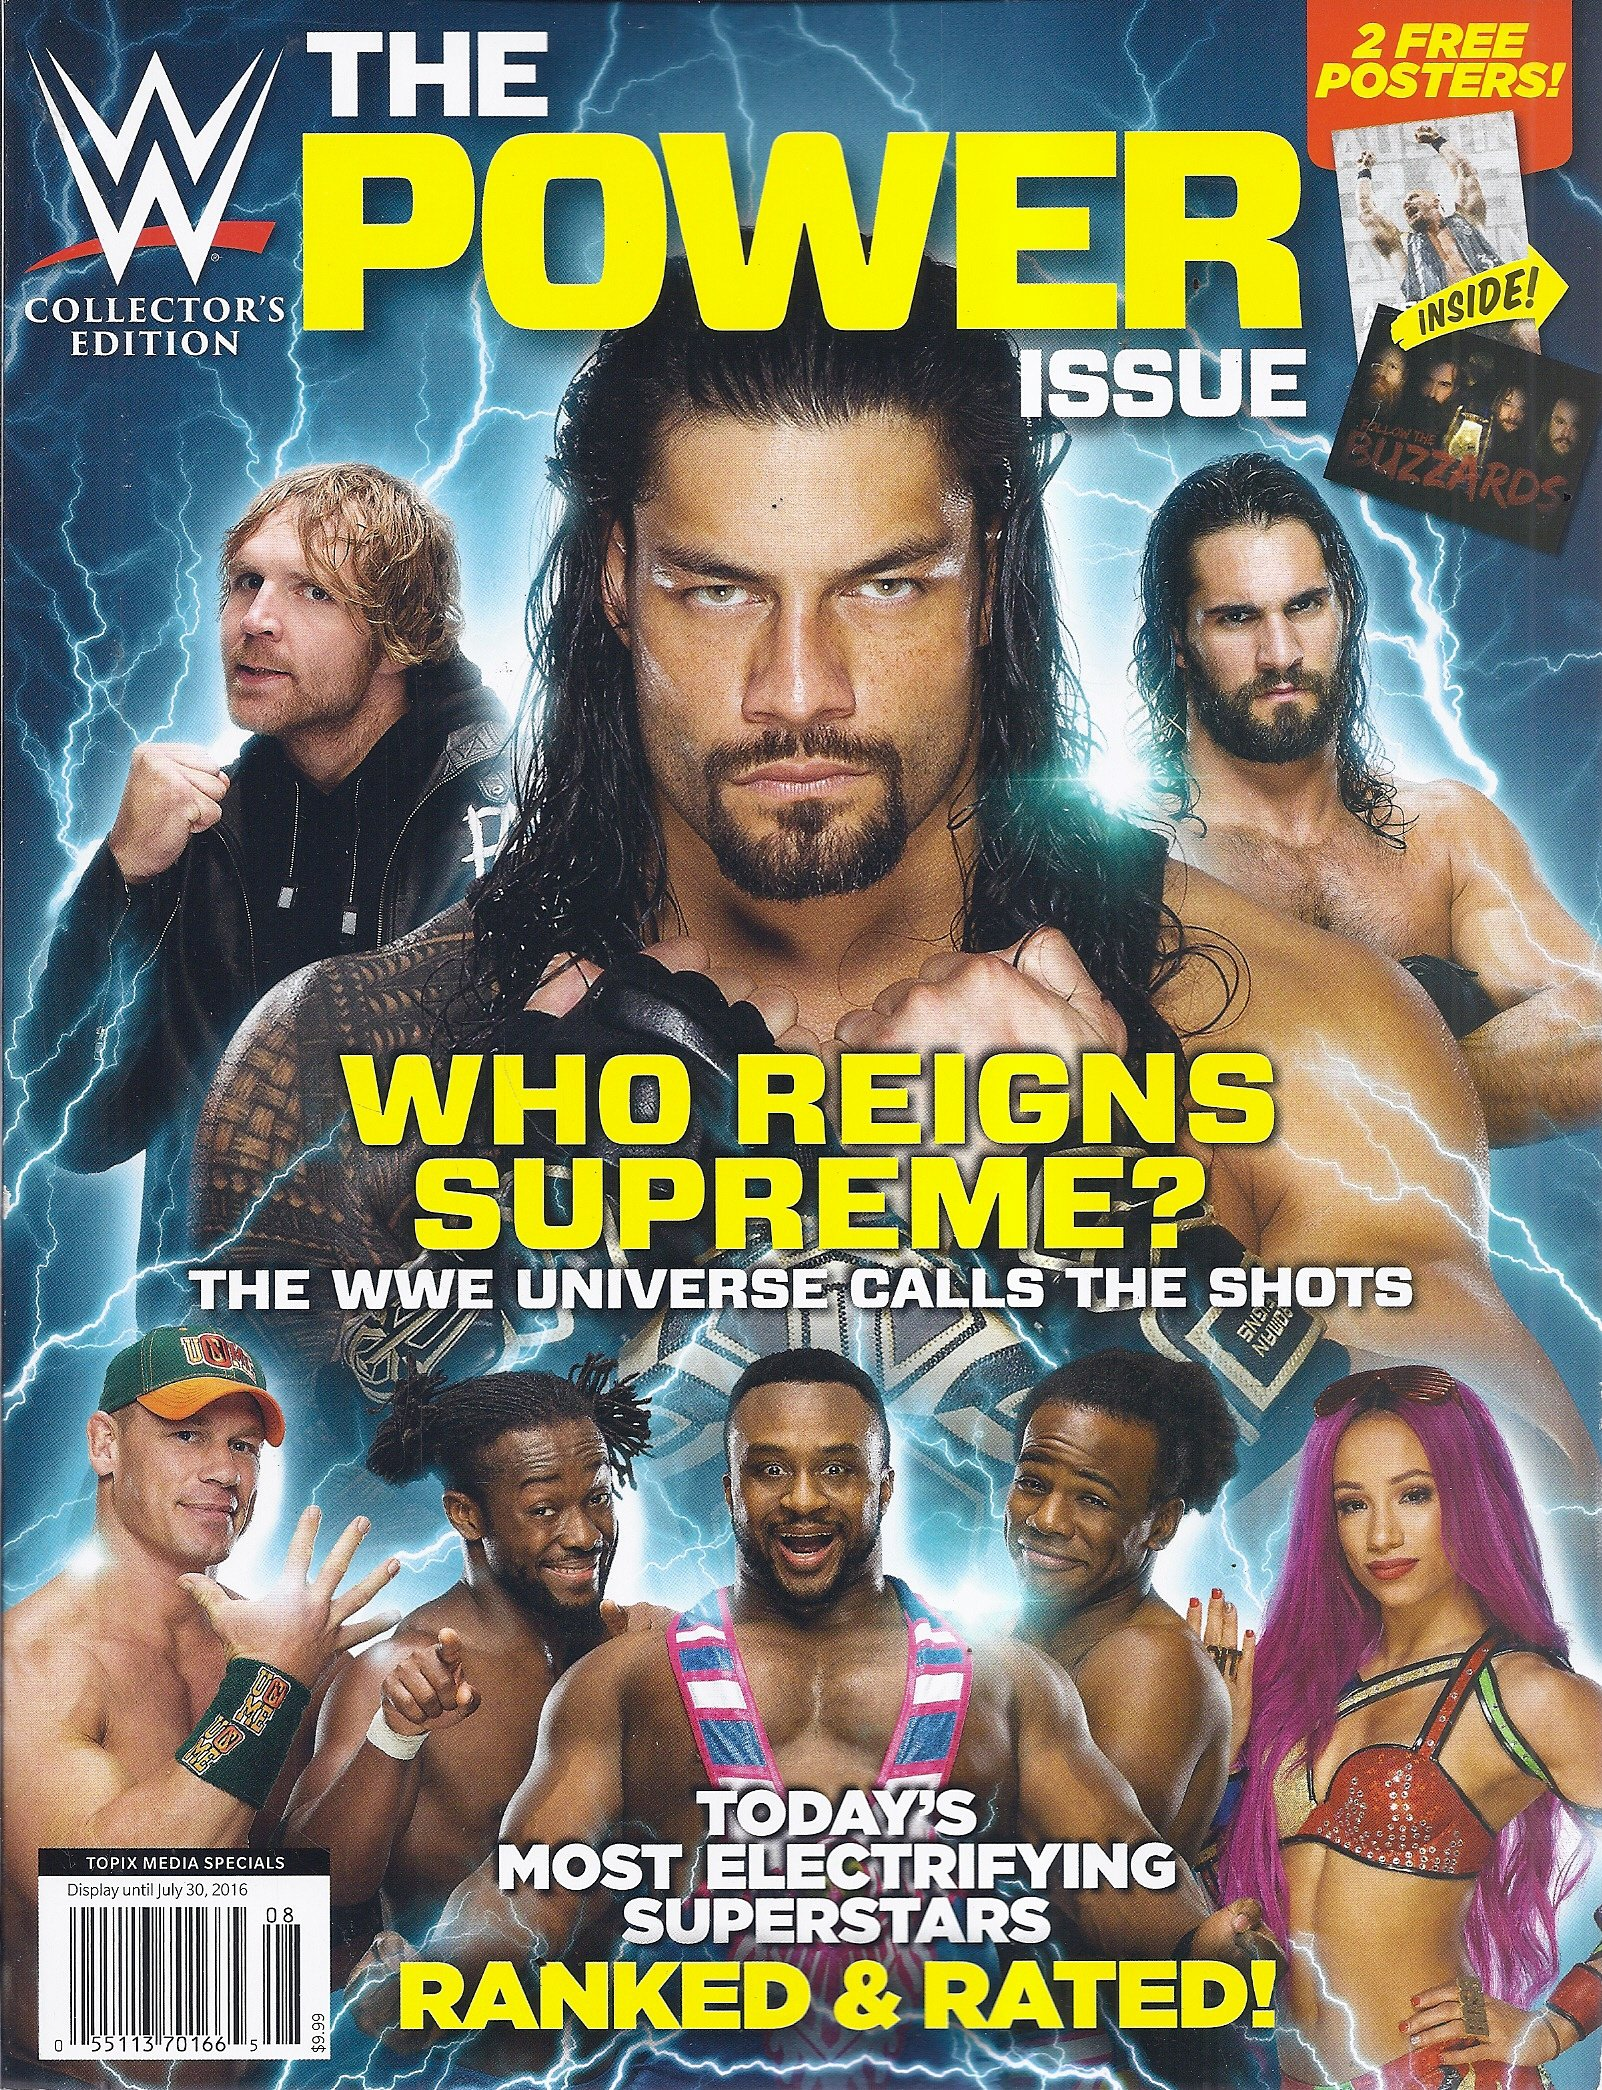 Download WWE Collector's Edition Magazine (The Power Issue) ebook